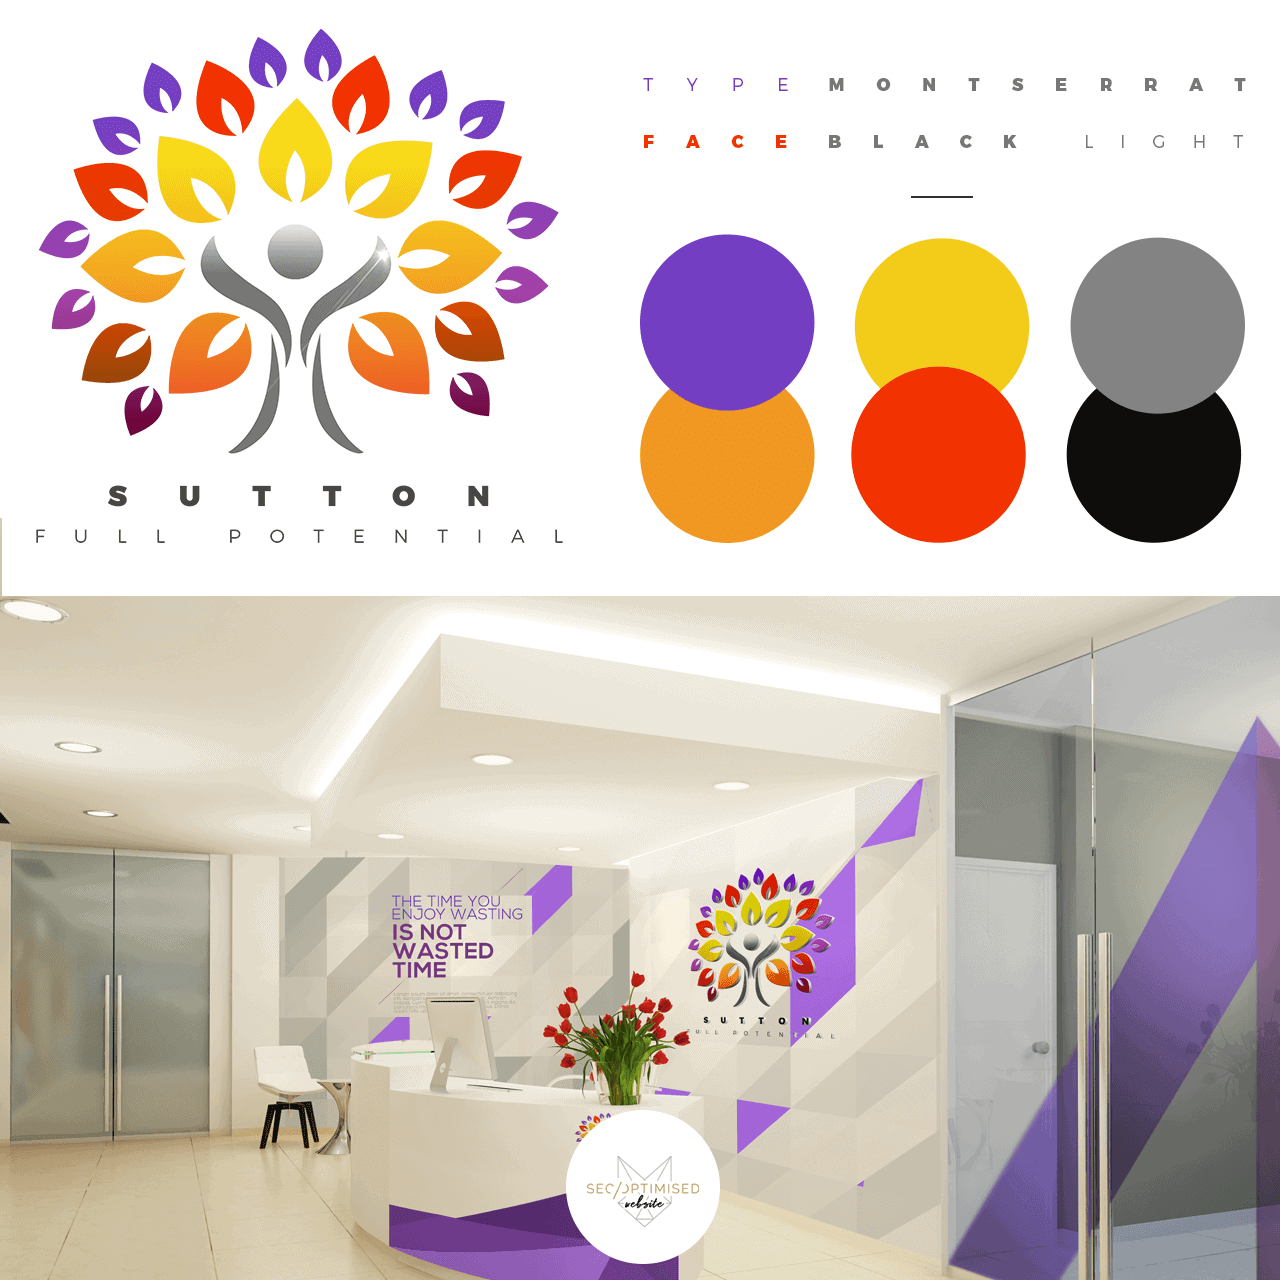 Employment Agency Logo wall mockup